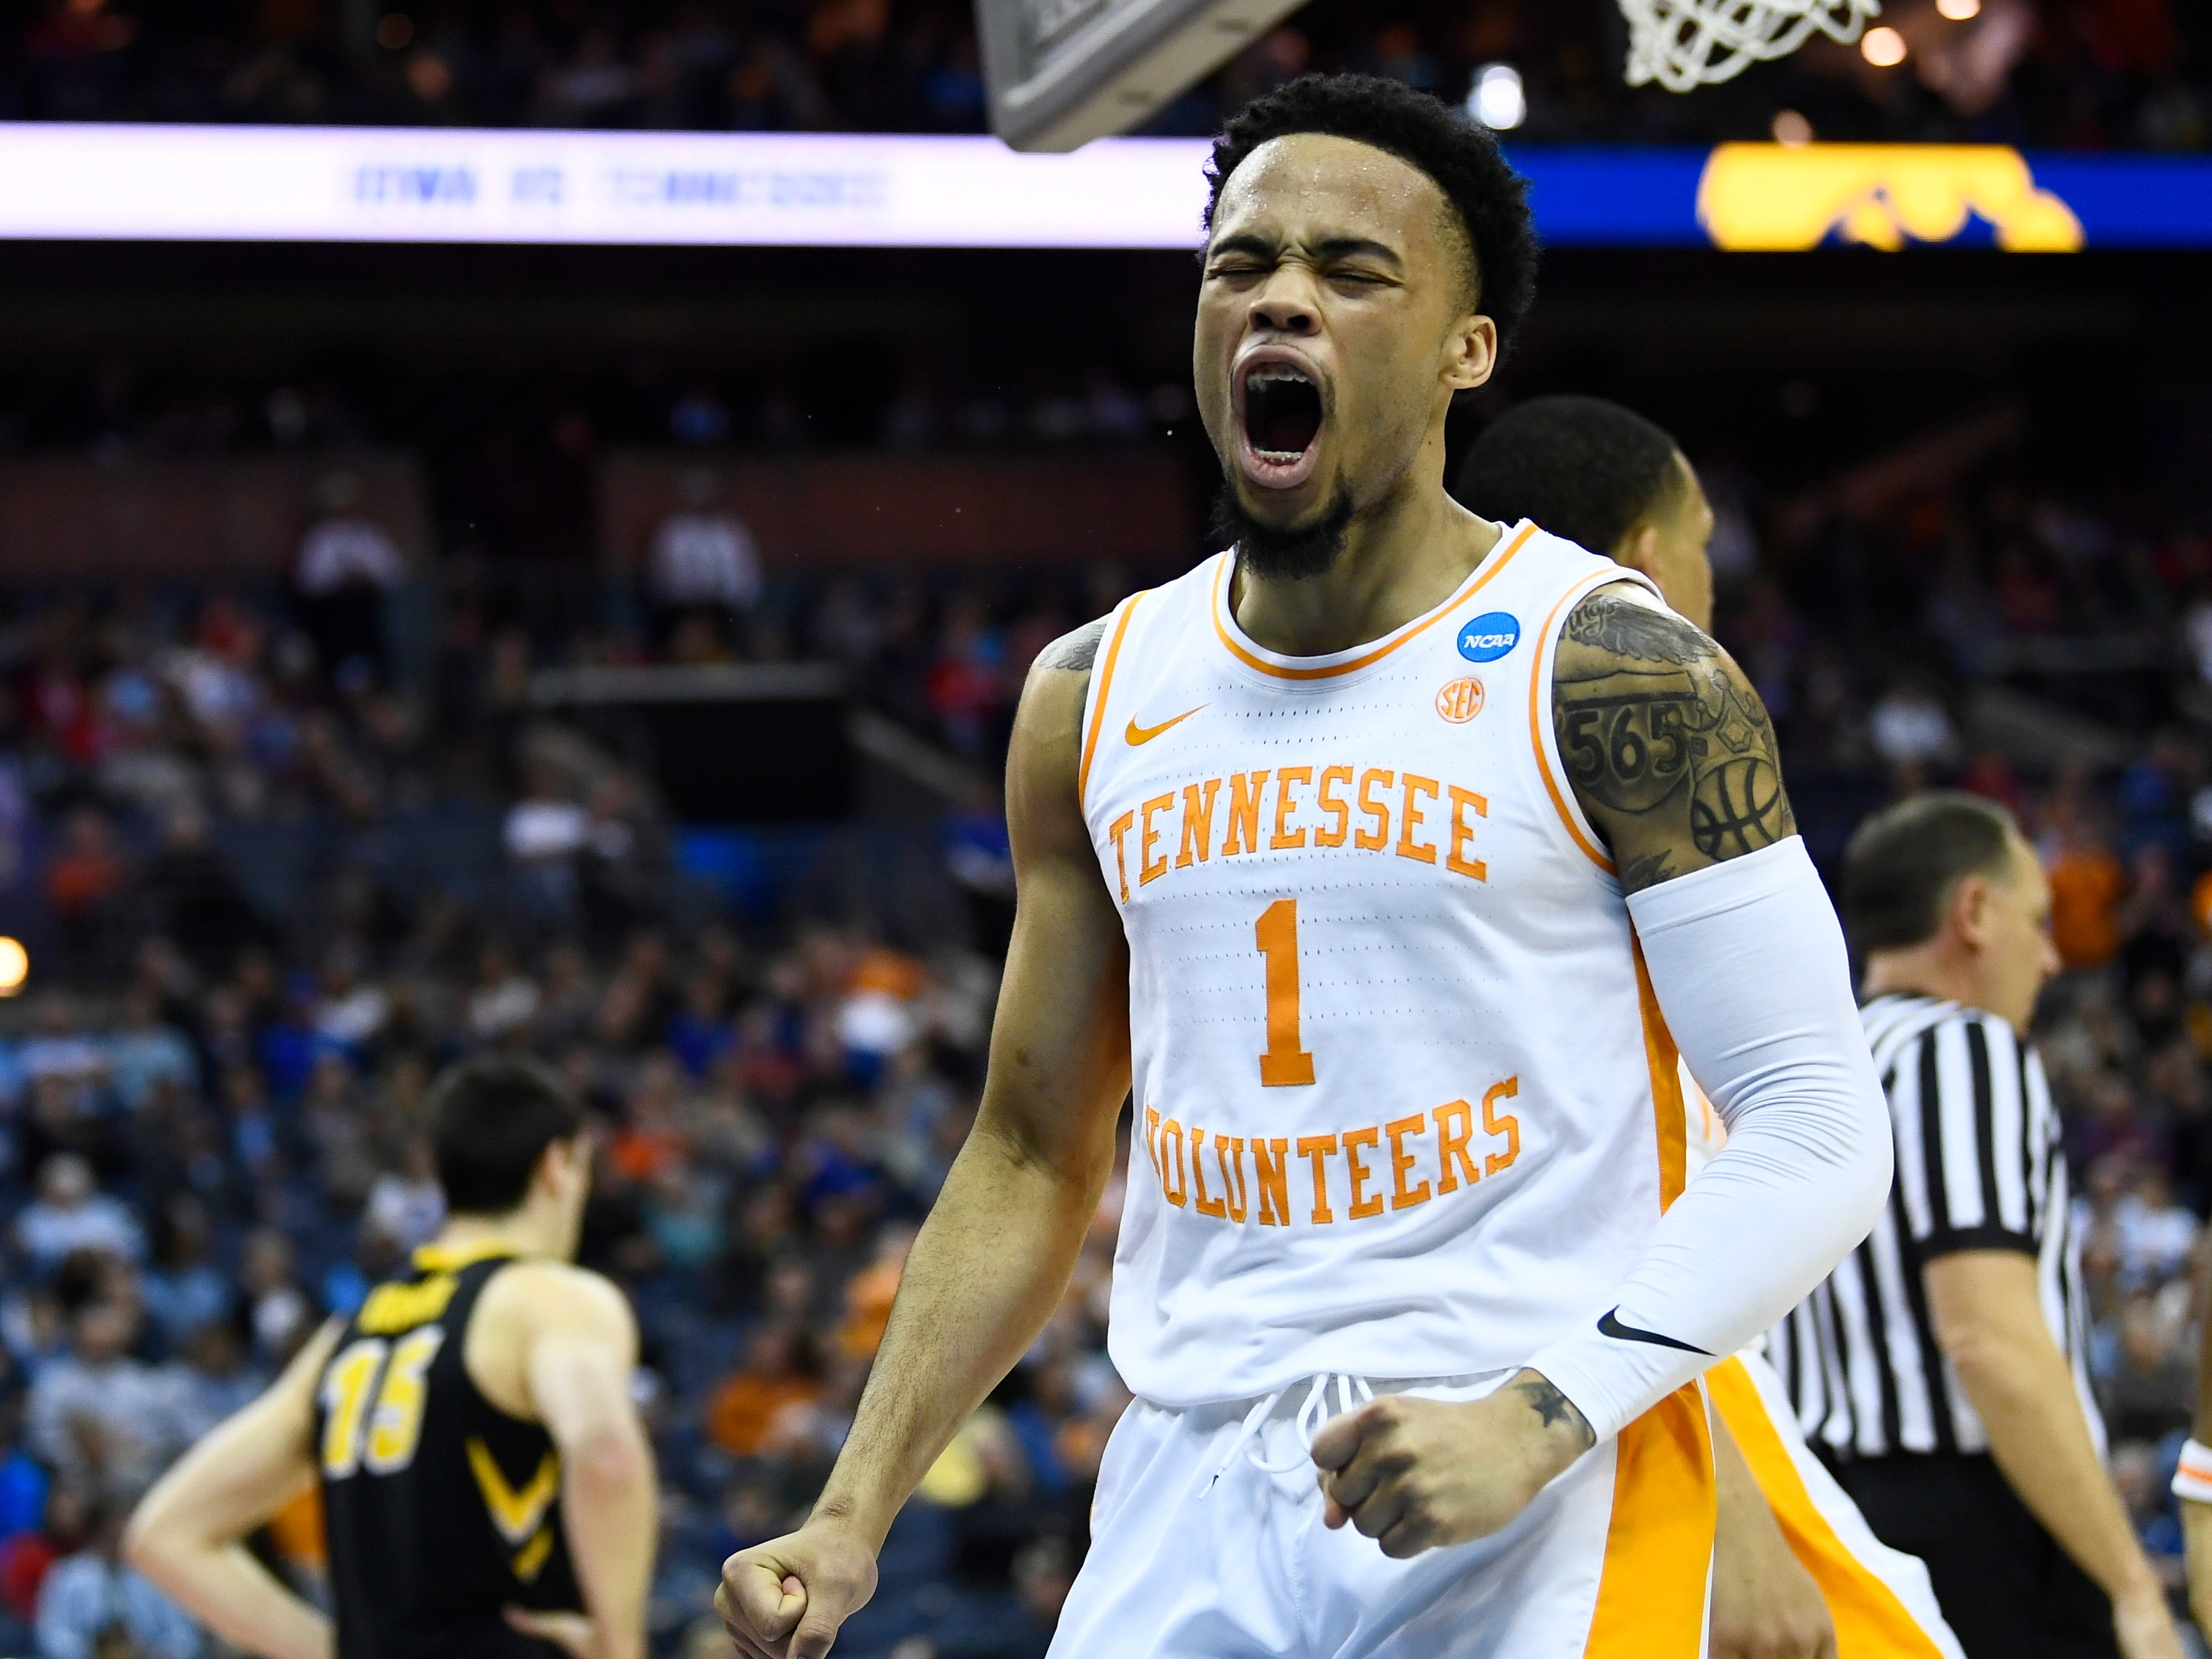 Tennessee guard Lamonte Turner (1) celebrates a foul against Iowa during the first half of the game in the second round of the NCAA Tournament at Nationwide Arena in Columbus, Ohio, Sunday, March 24, 2019.